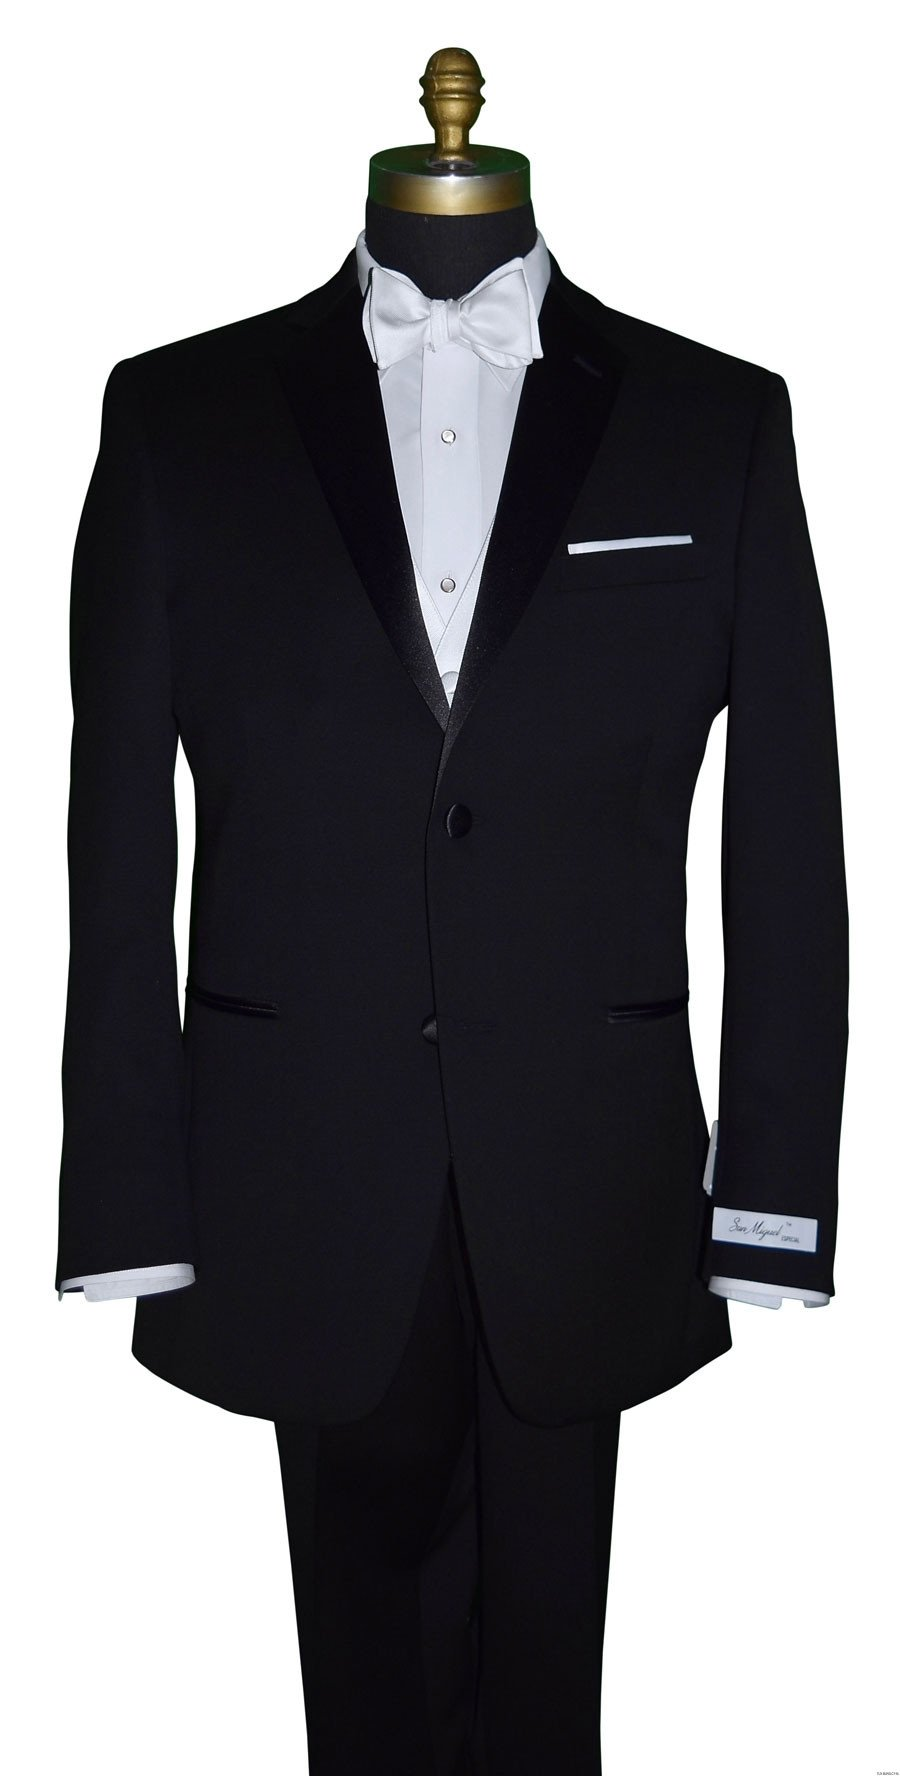 Men's San Miguel black tuxedo with white tie-yourself bowtie and vest